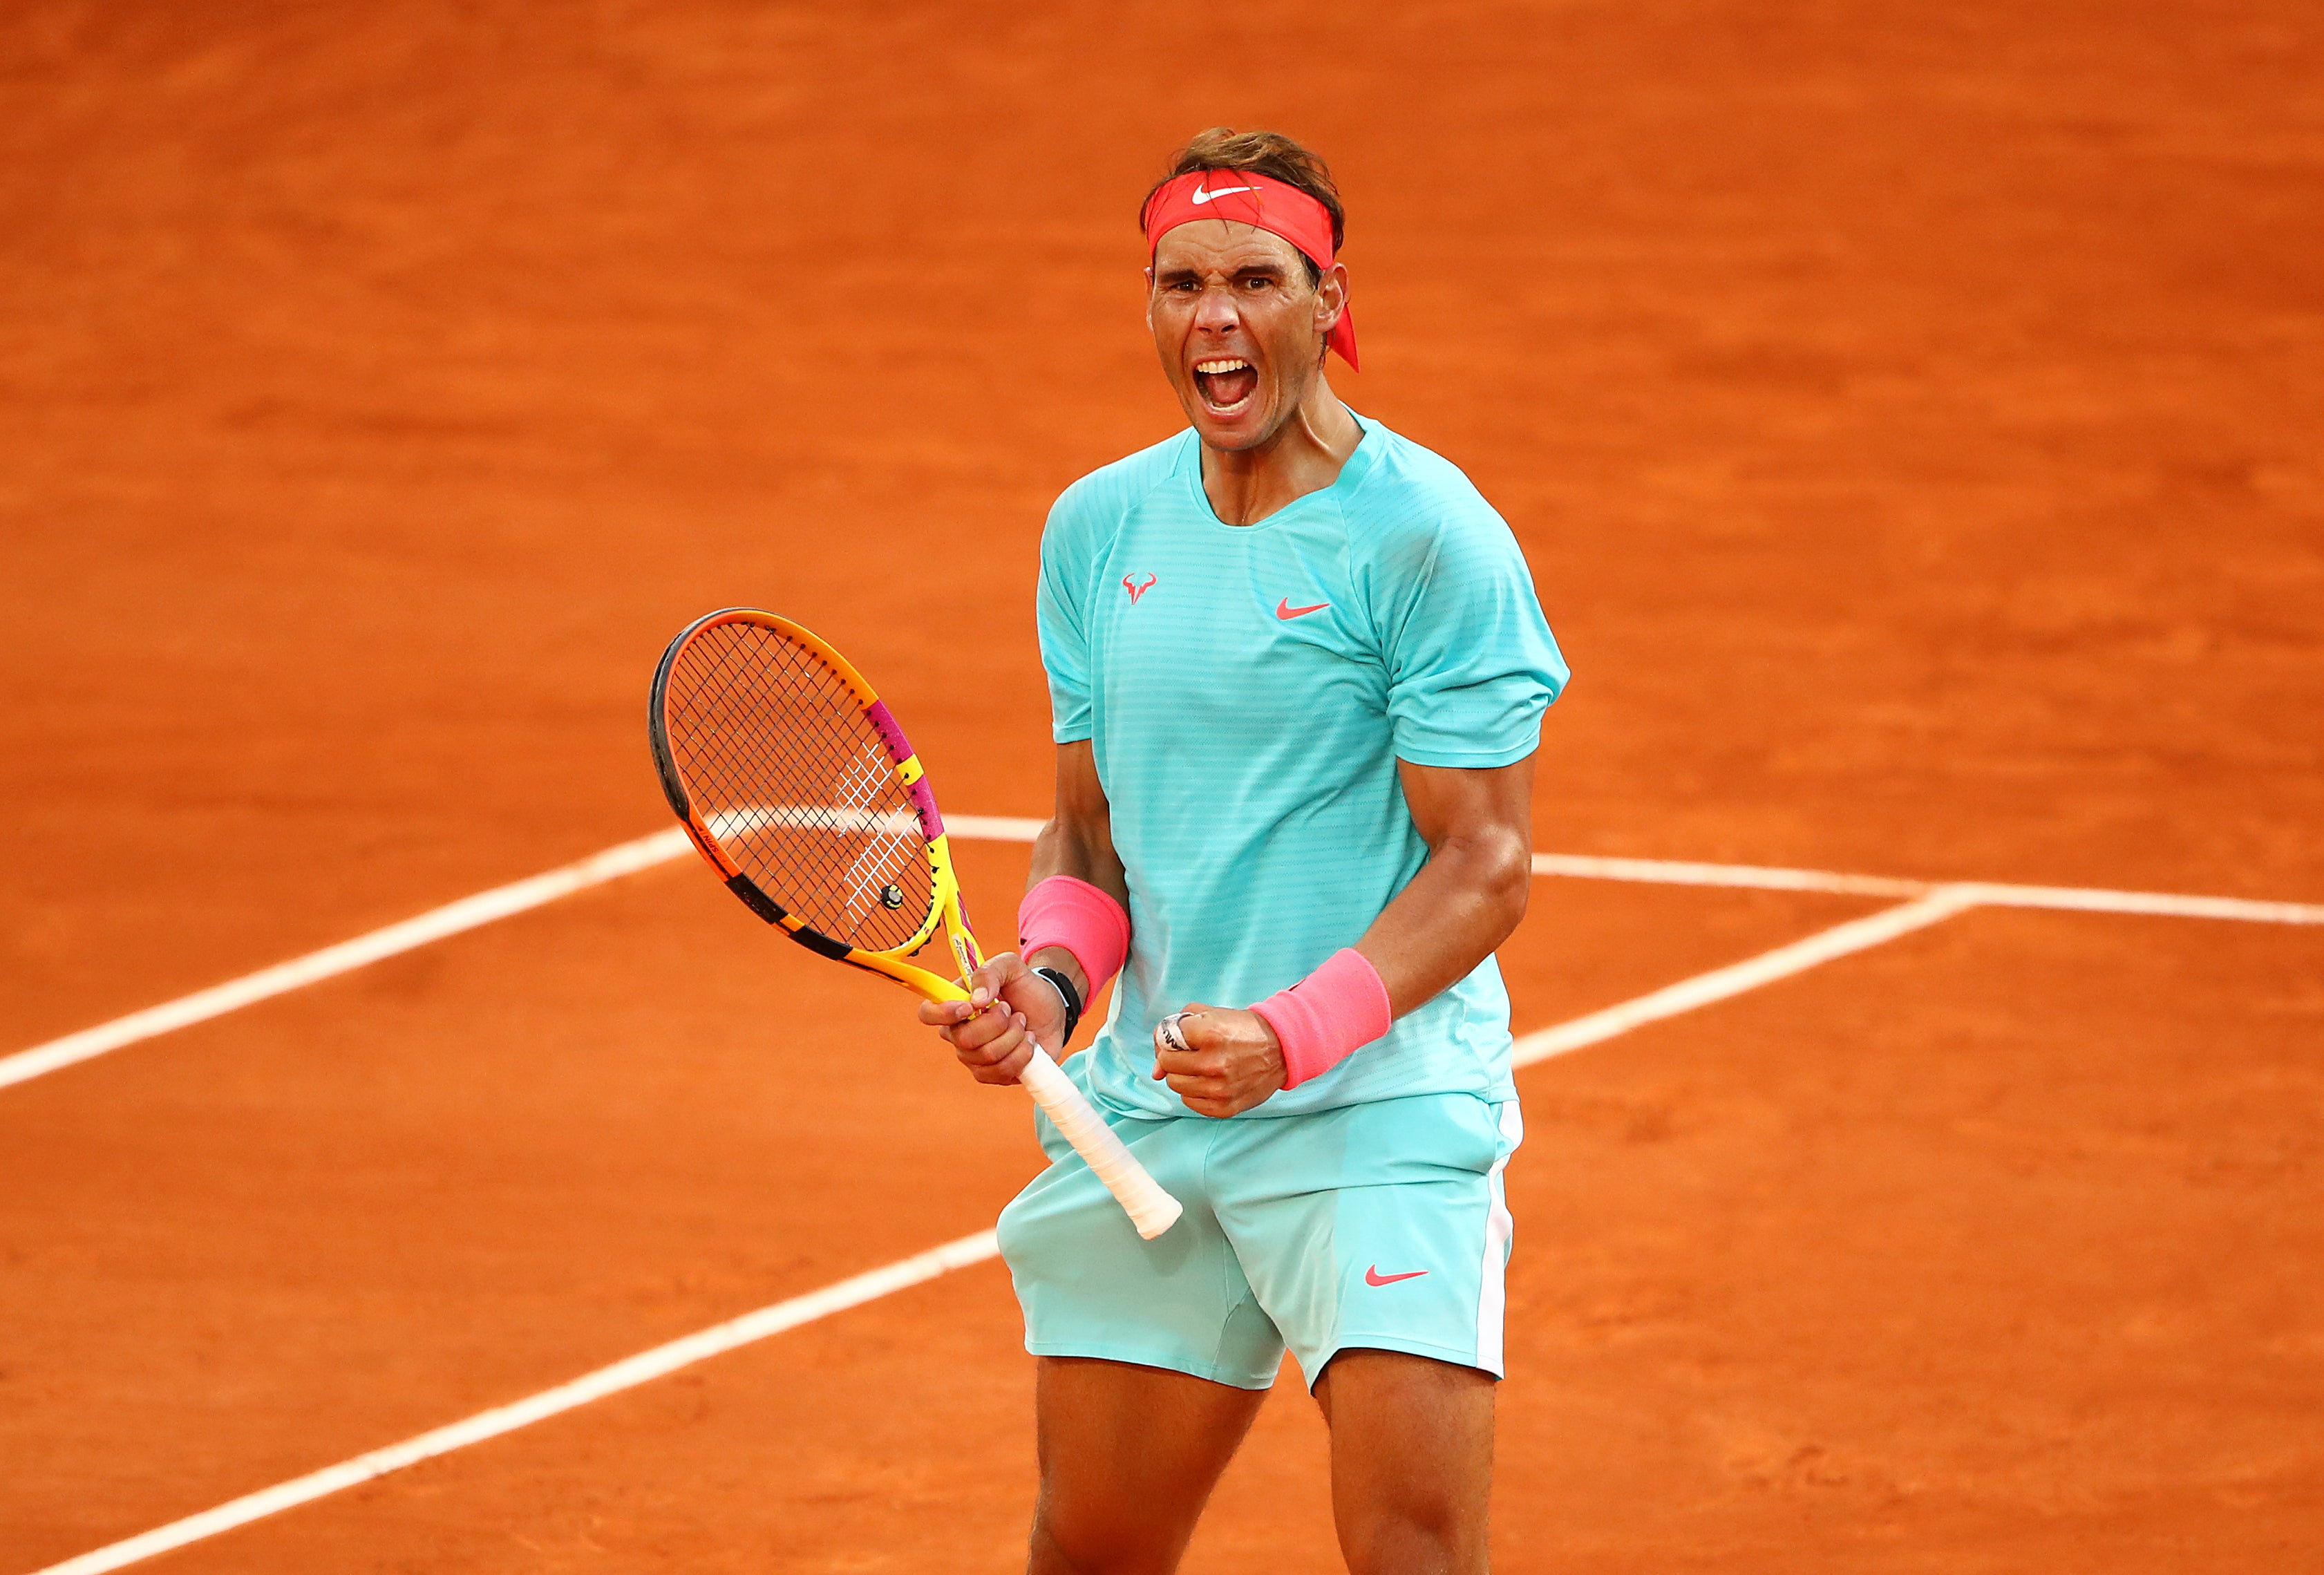 Rafael Nadal Reaches 13th French Open Final Without Dropping A Set After Beating Diego Schwartzman The Independent